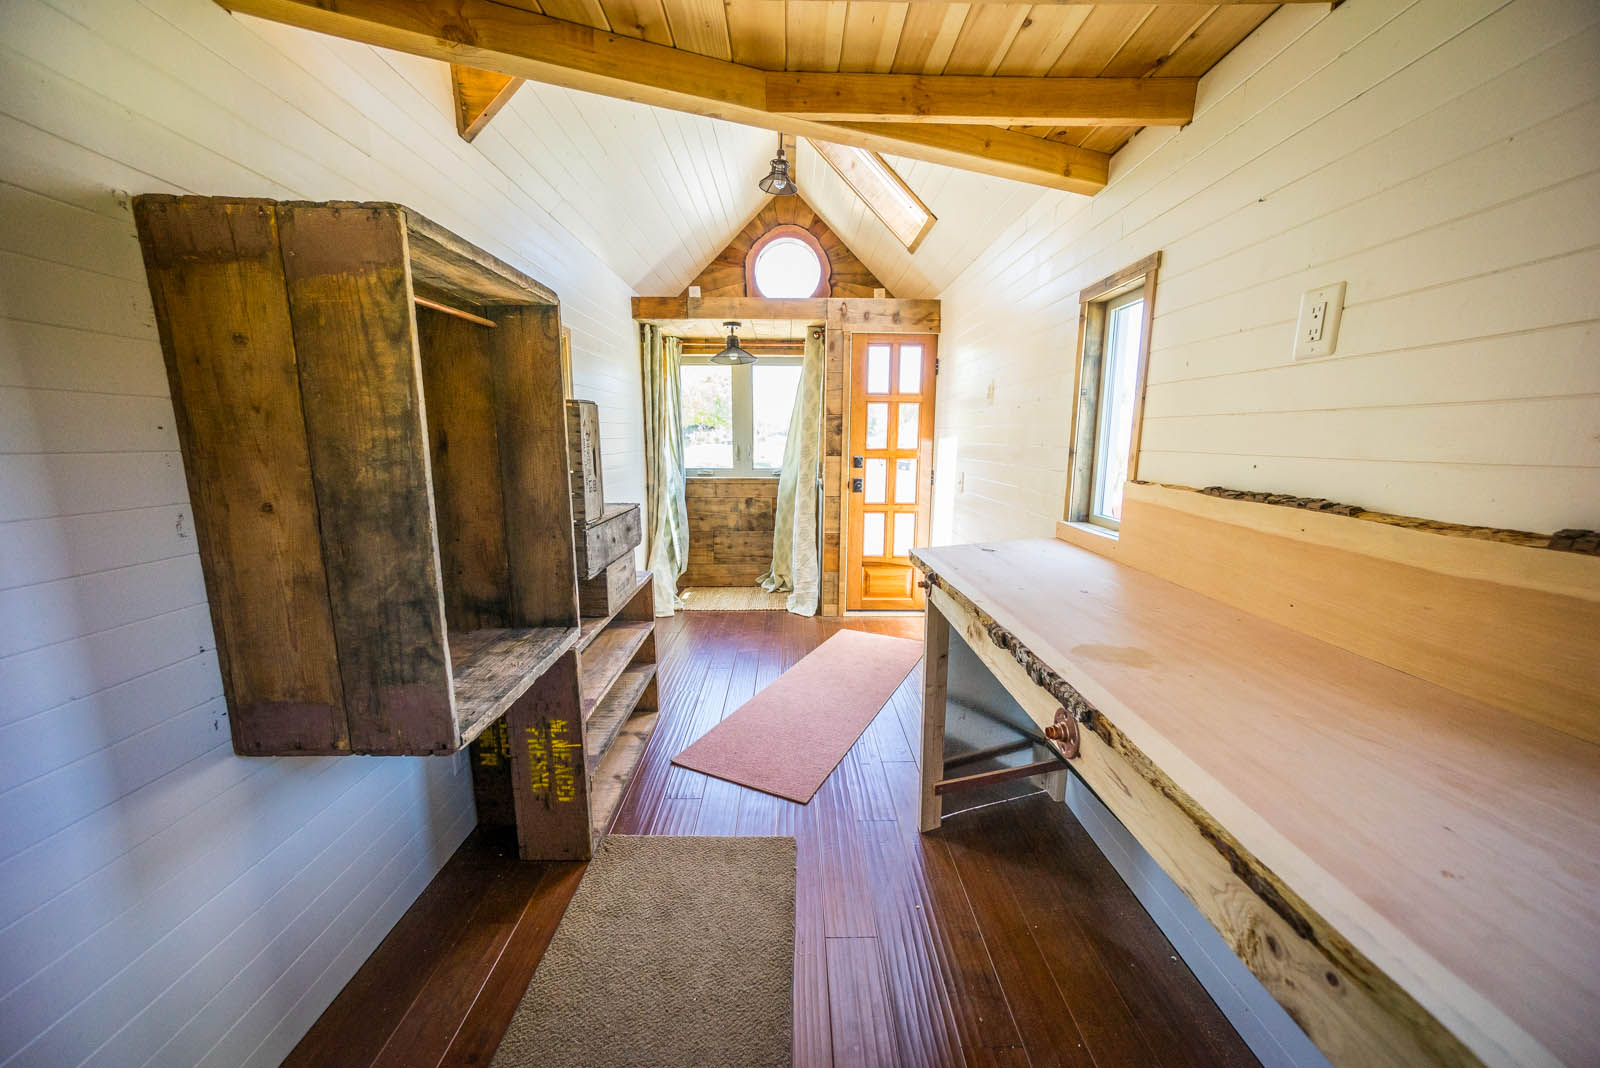 Tiny house giant journey interior tiny house giant journey - House interior images ...